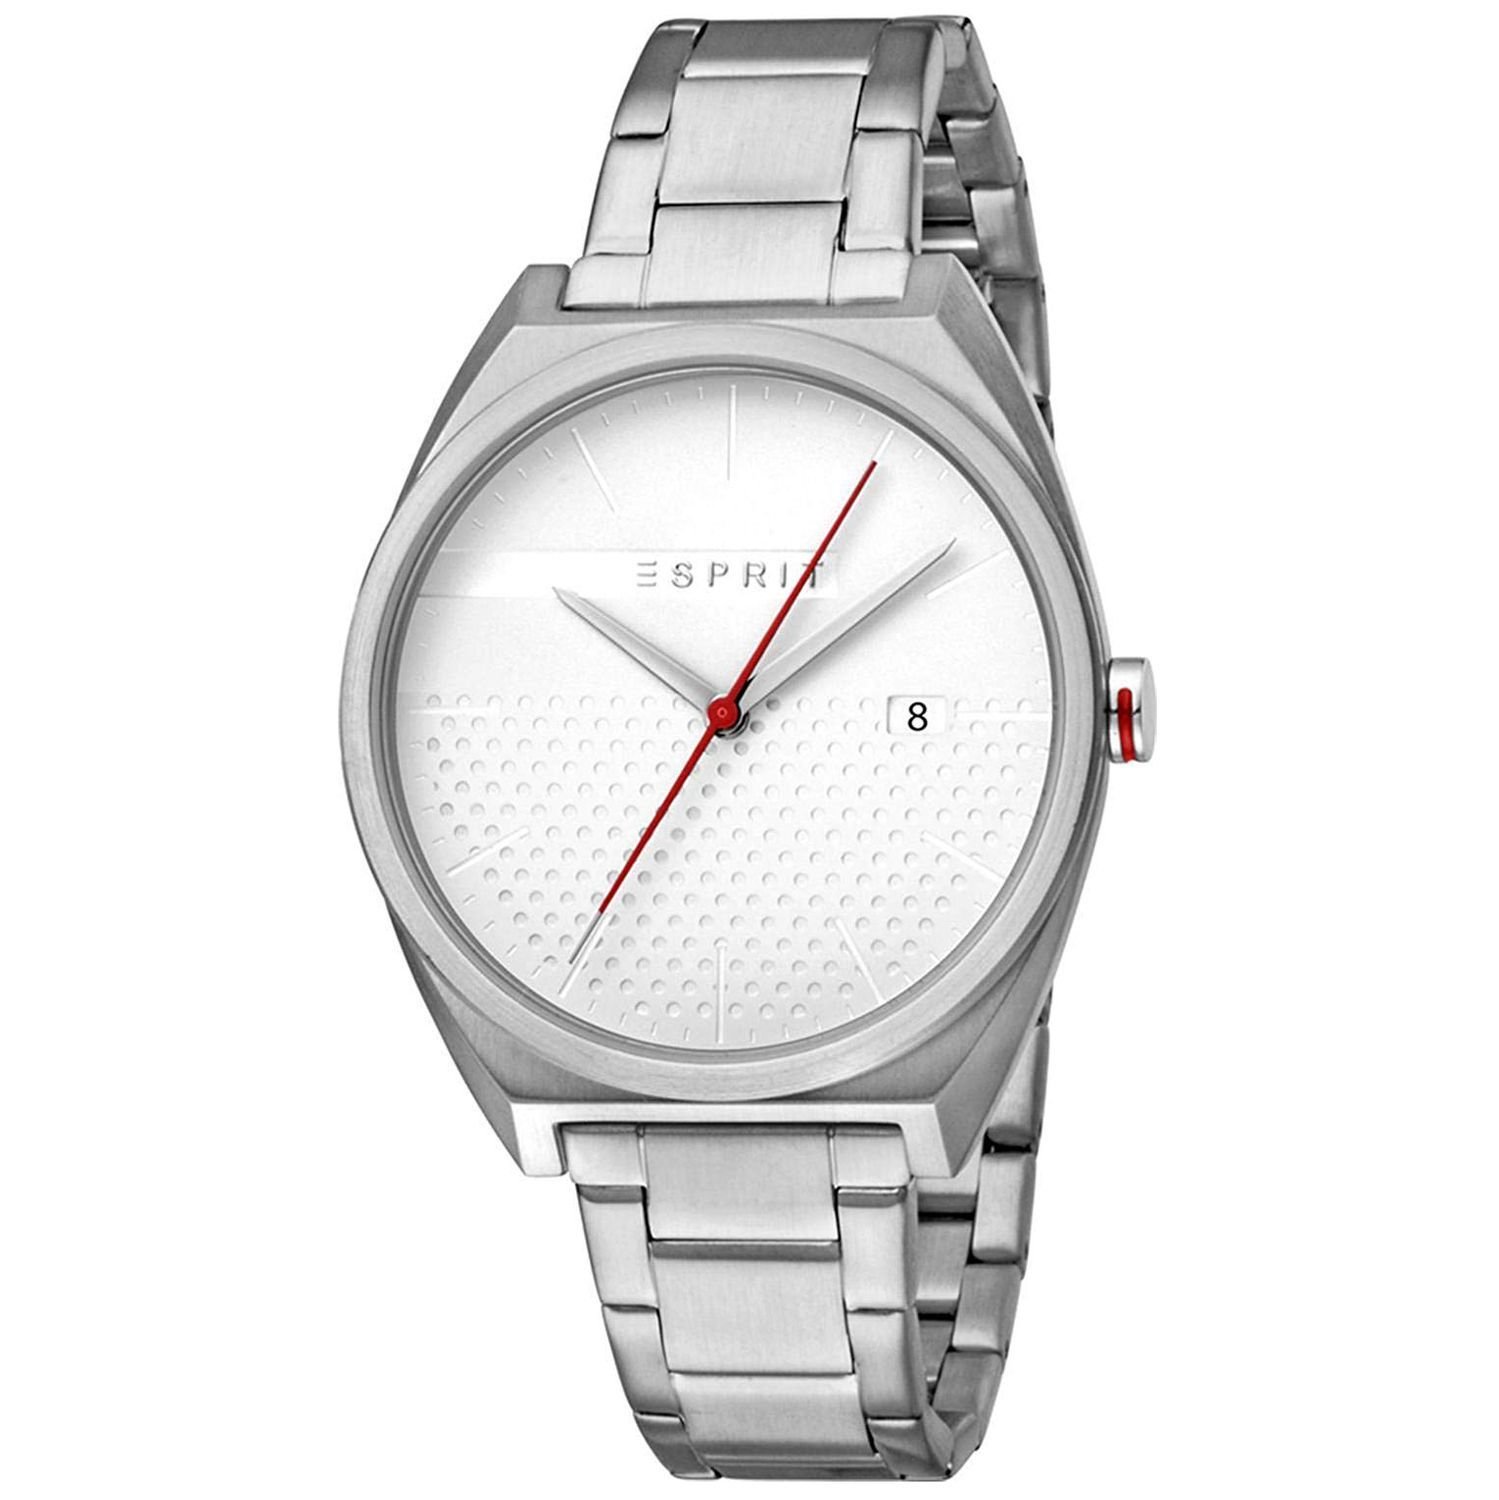 Esprit Watch ES1G056M0055 Men Silver